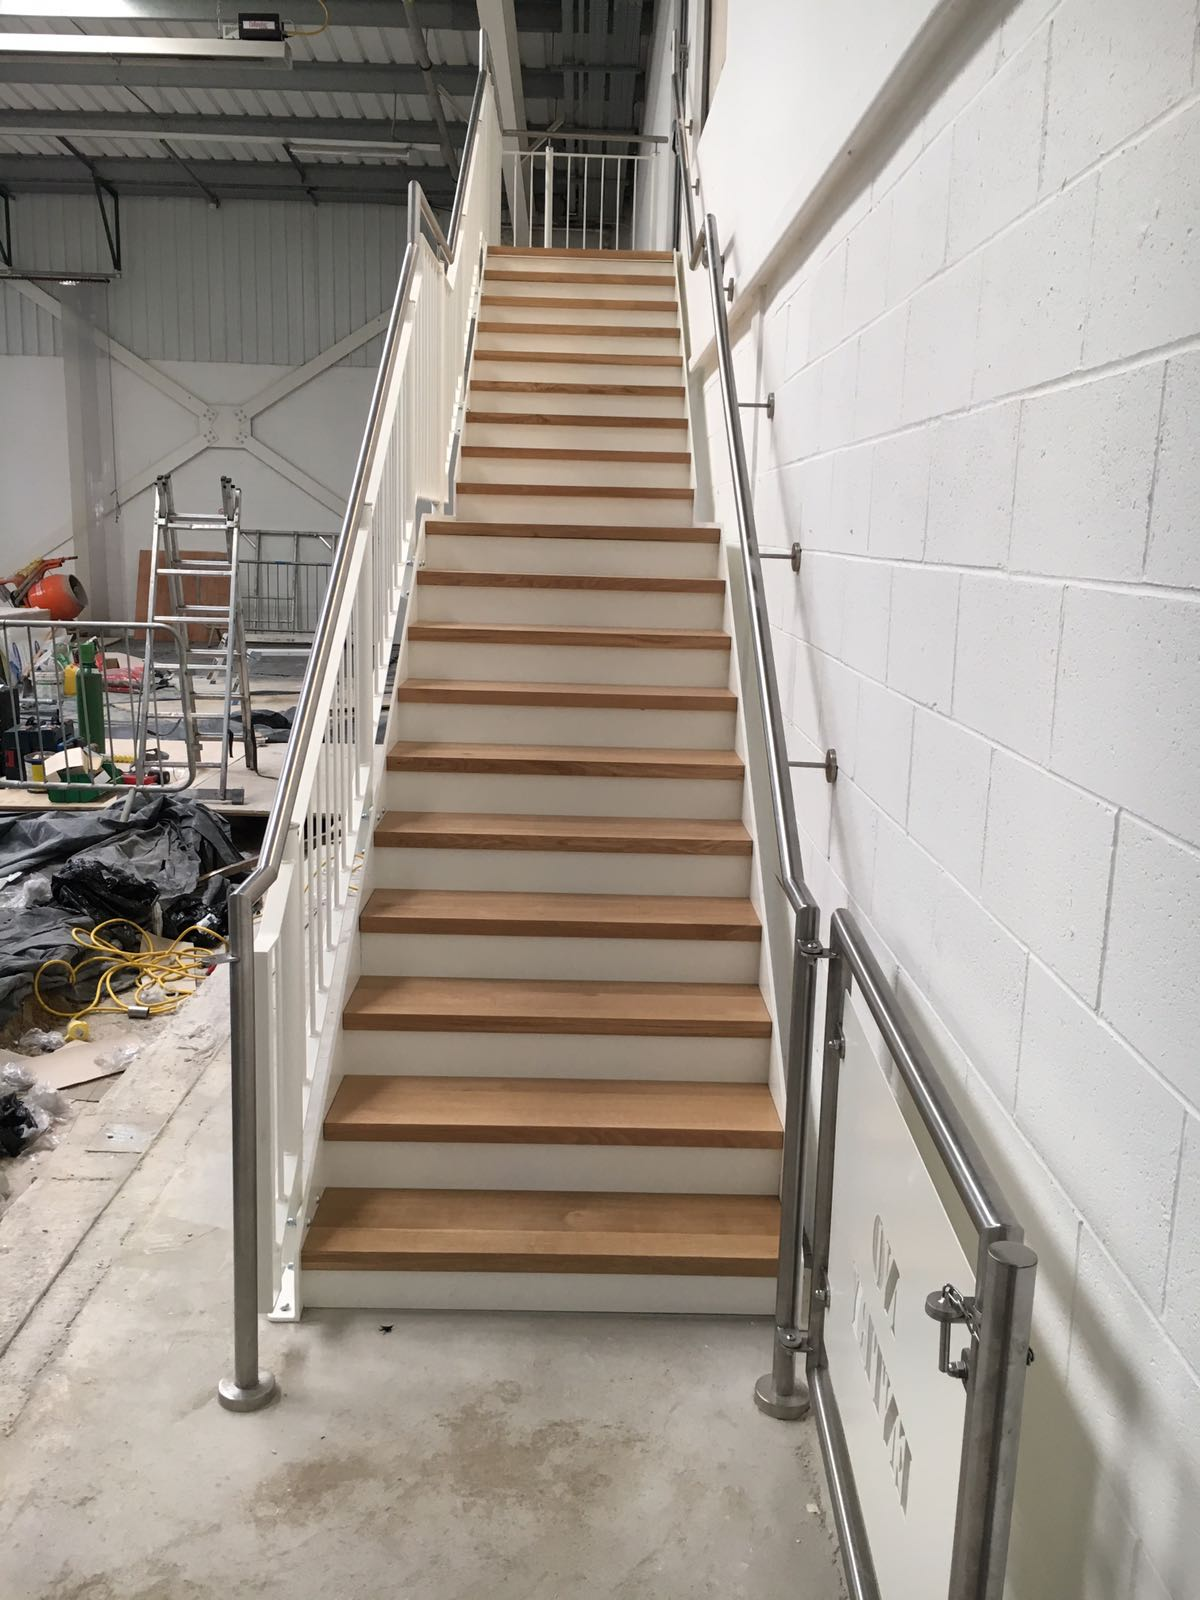 Bespoke steel staircase for Aintree Racecourse